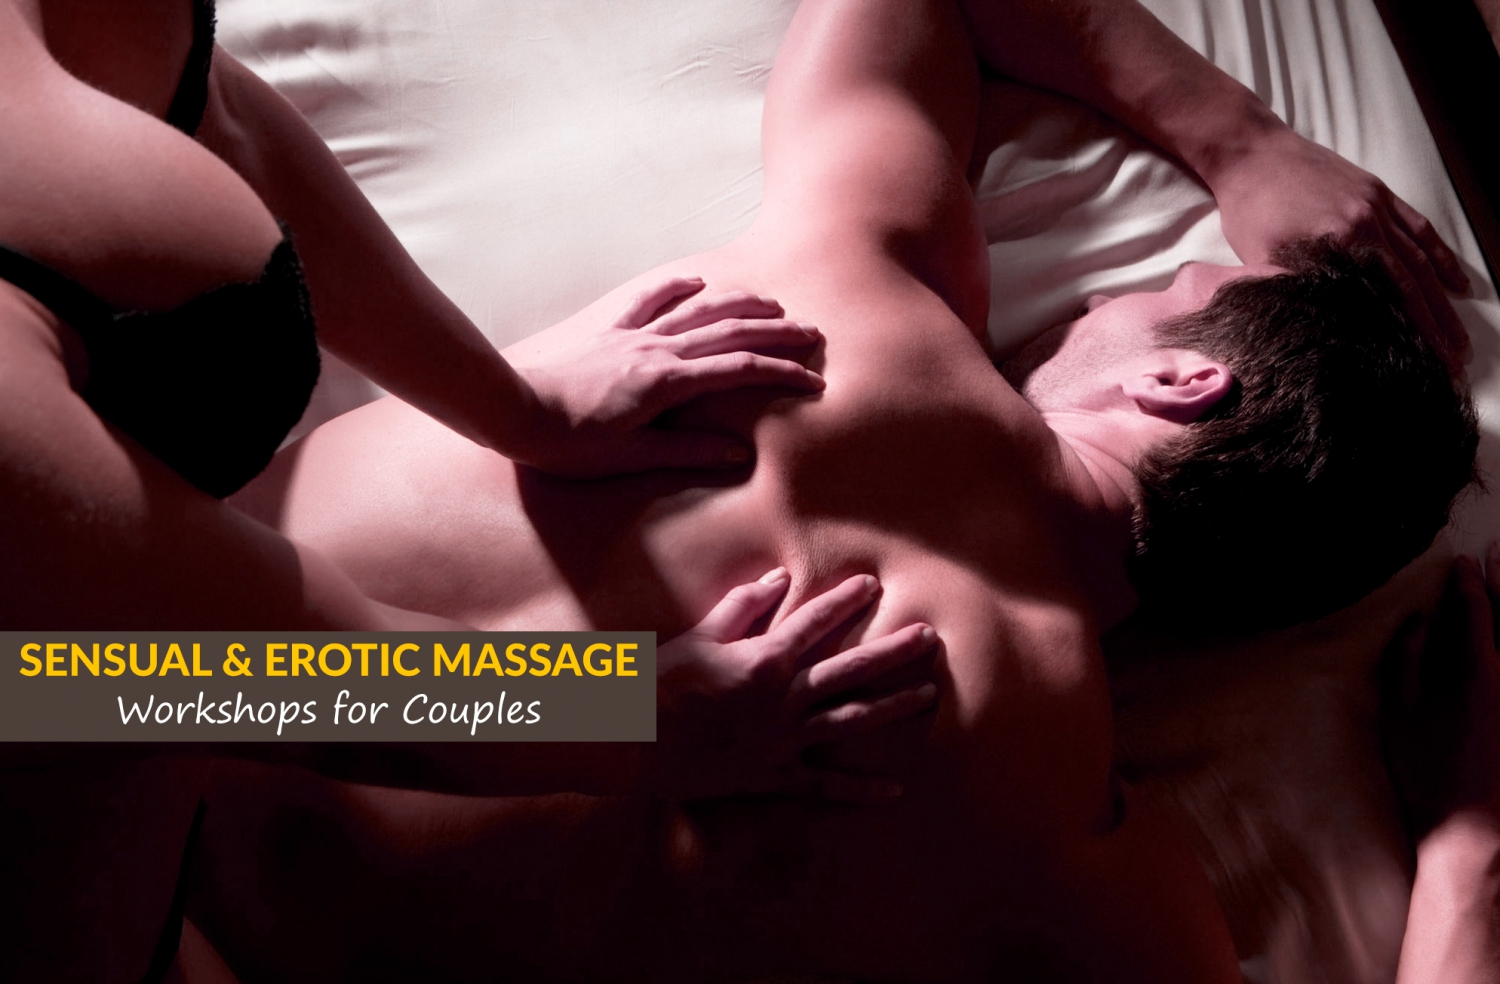 Sensual & Erotic Massage Workshops for Couples